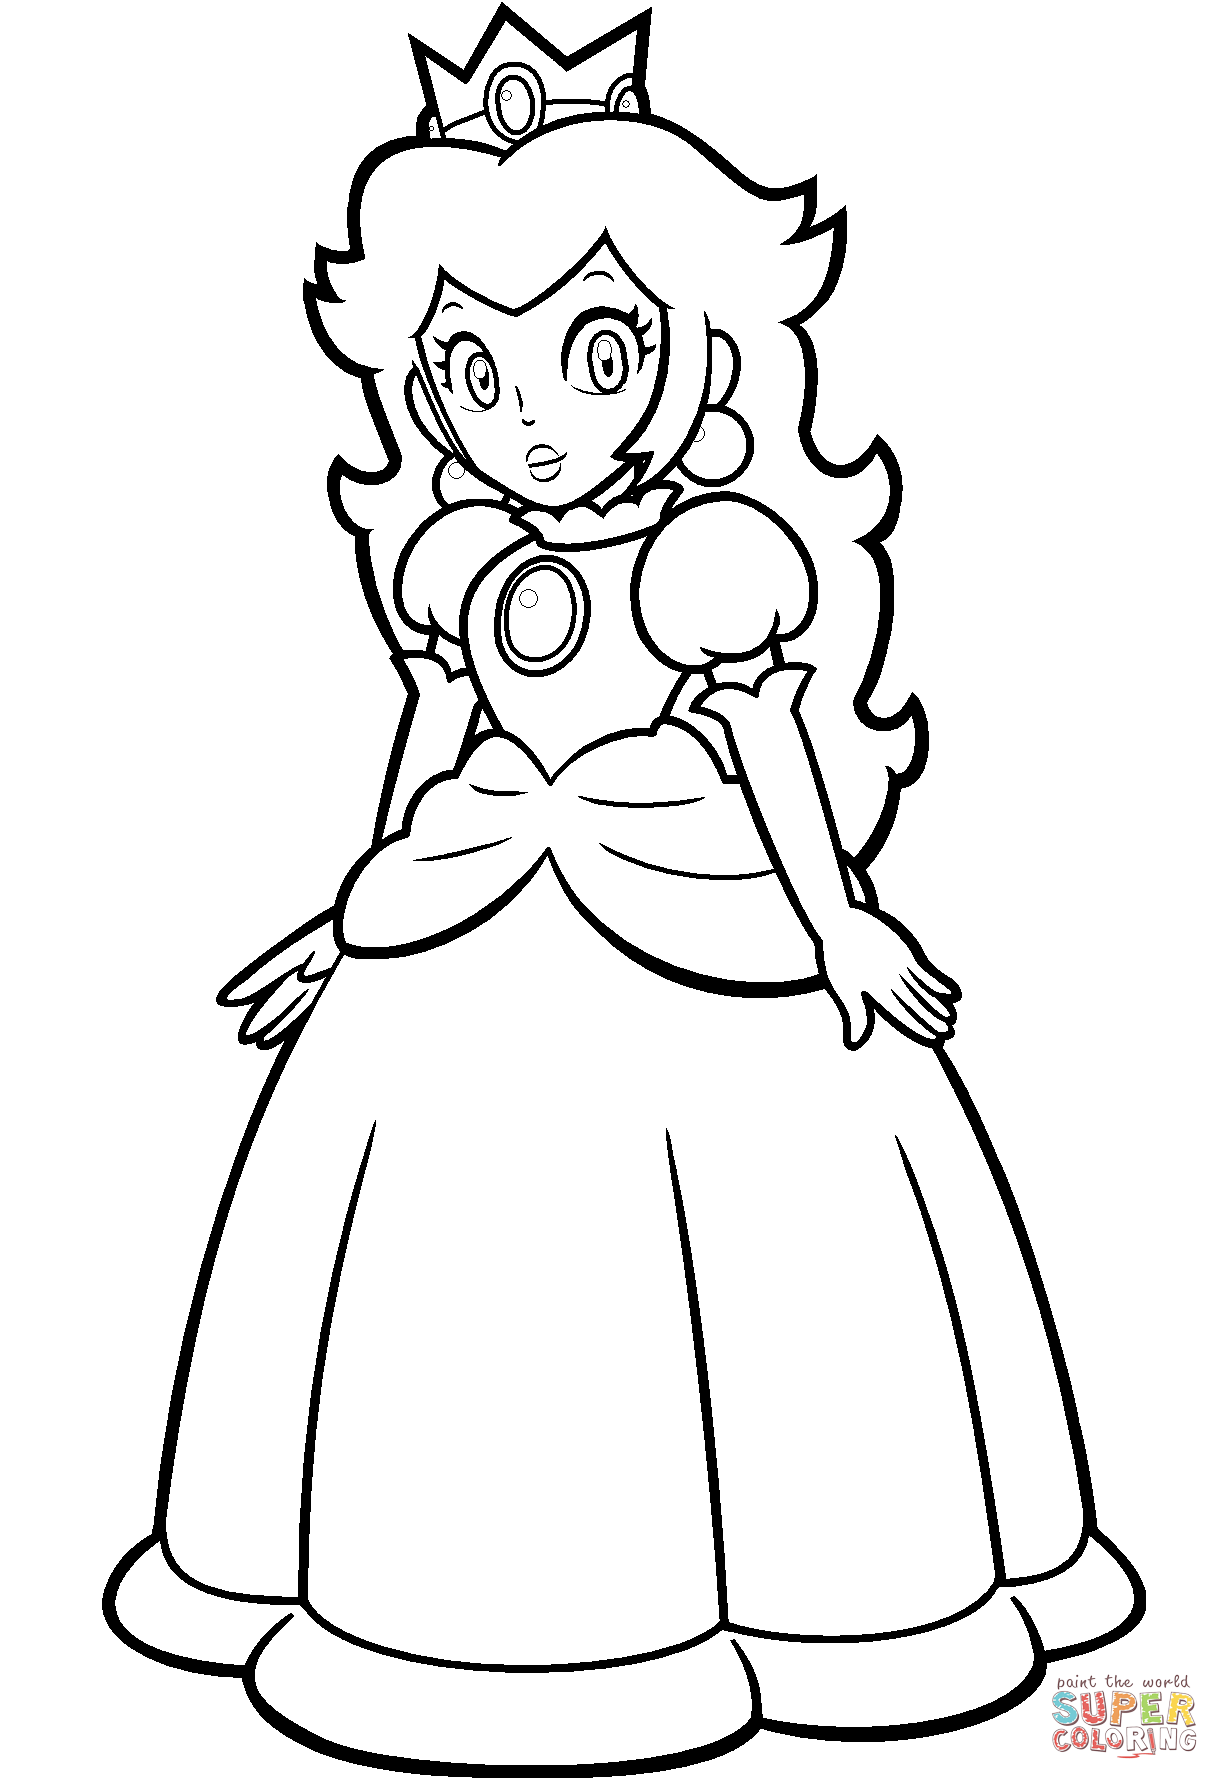 Princess Peach Coloring Pages Coloring Pages Super Mario Coloring Pages In 2020 Super Mario Coloring Pages Mario Coloring Pages Mario And Princess Peach